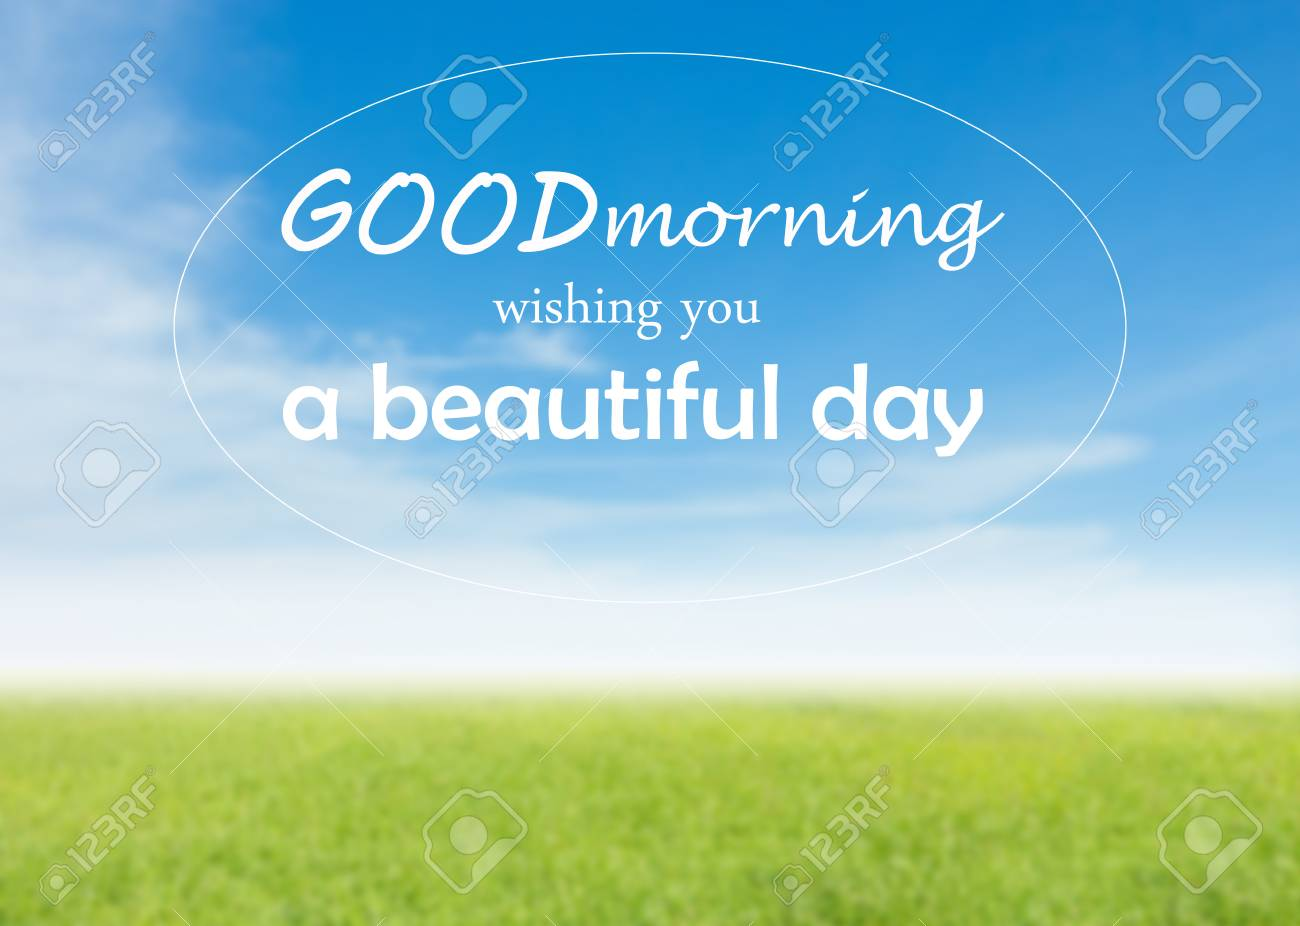 Good Morning Wishing You A Beautiful Day Quote In Green Grass